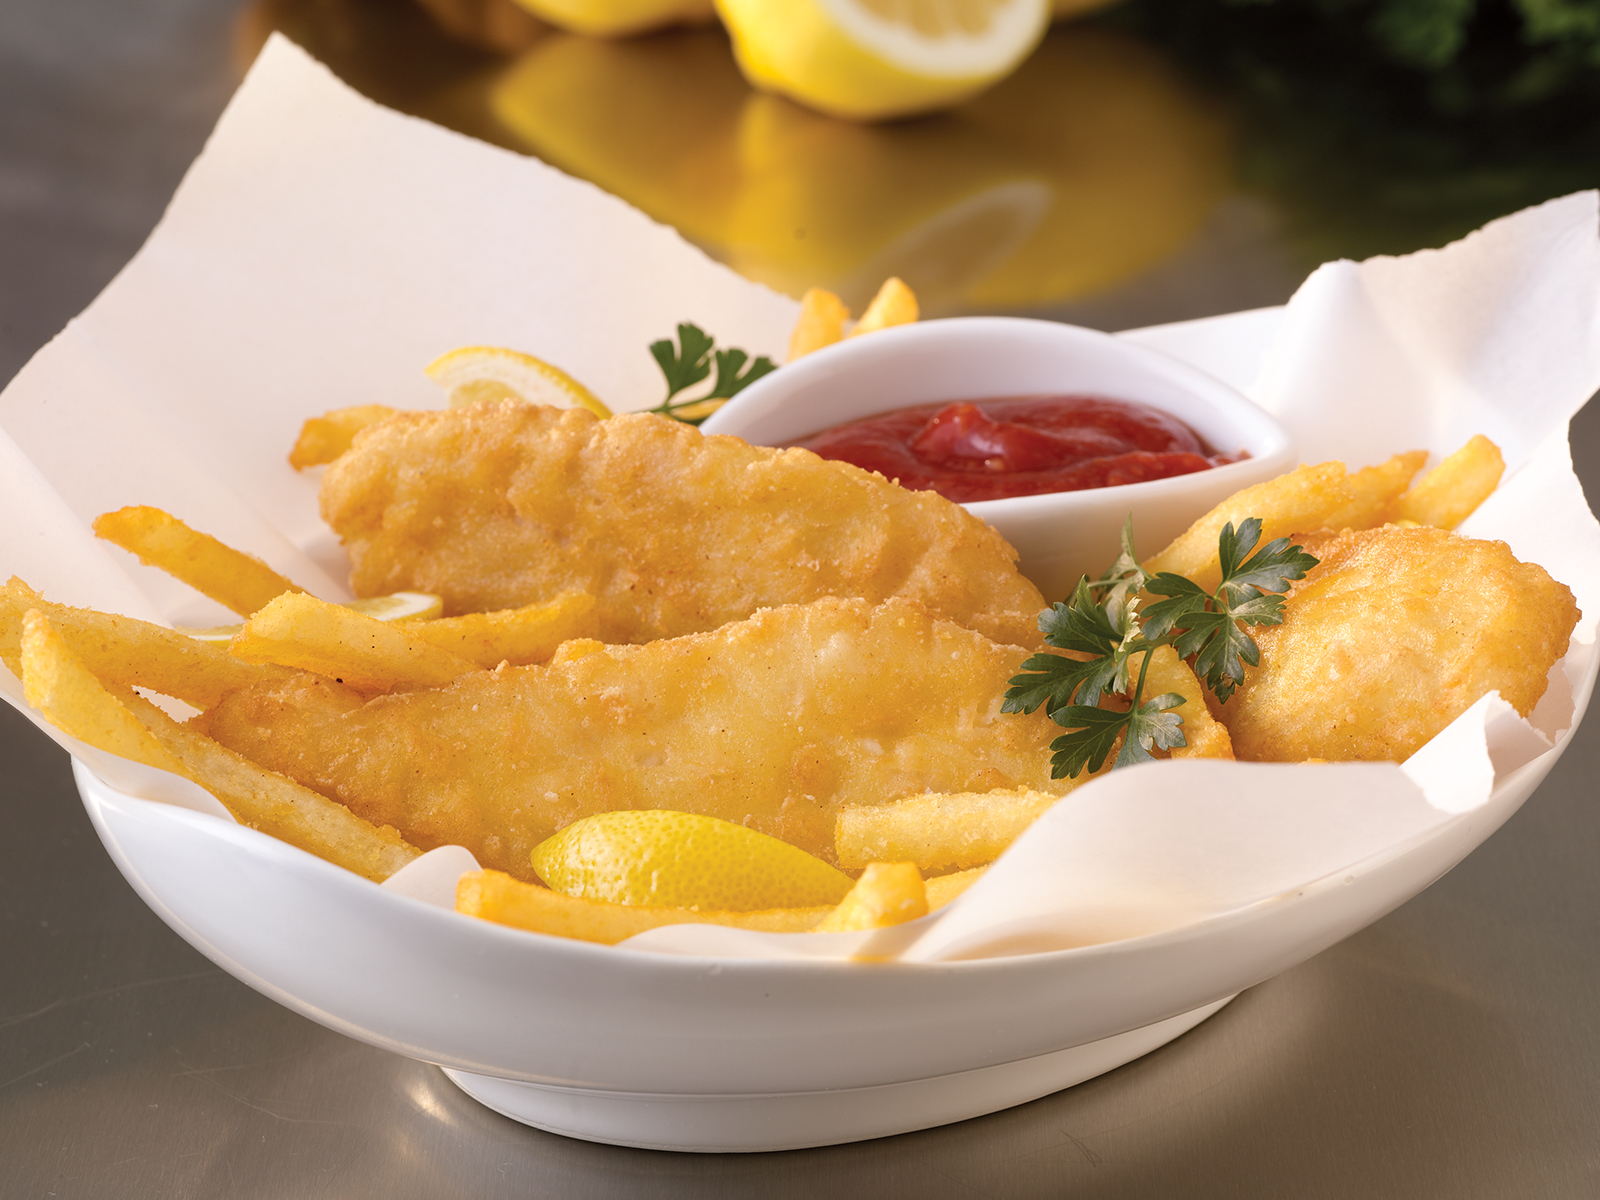 Supreme Crunch Beer-Battered Cod Fillets 3 oz (1/10 lb) 413667